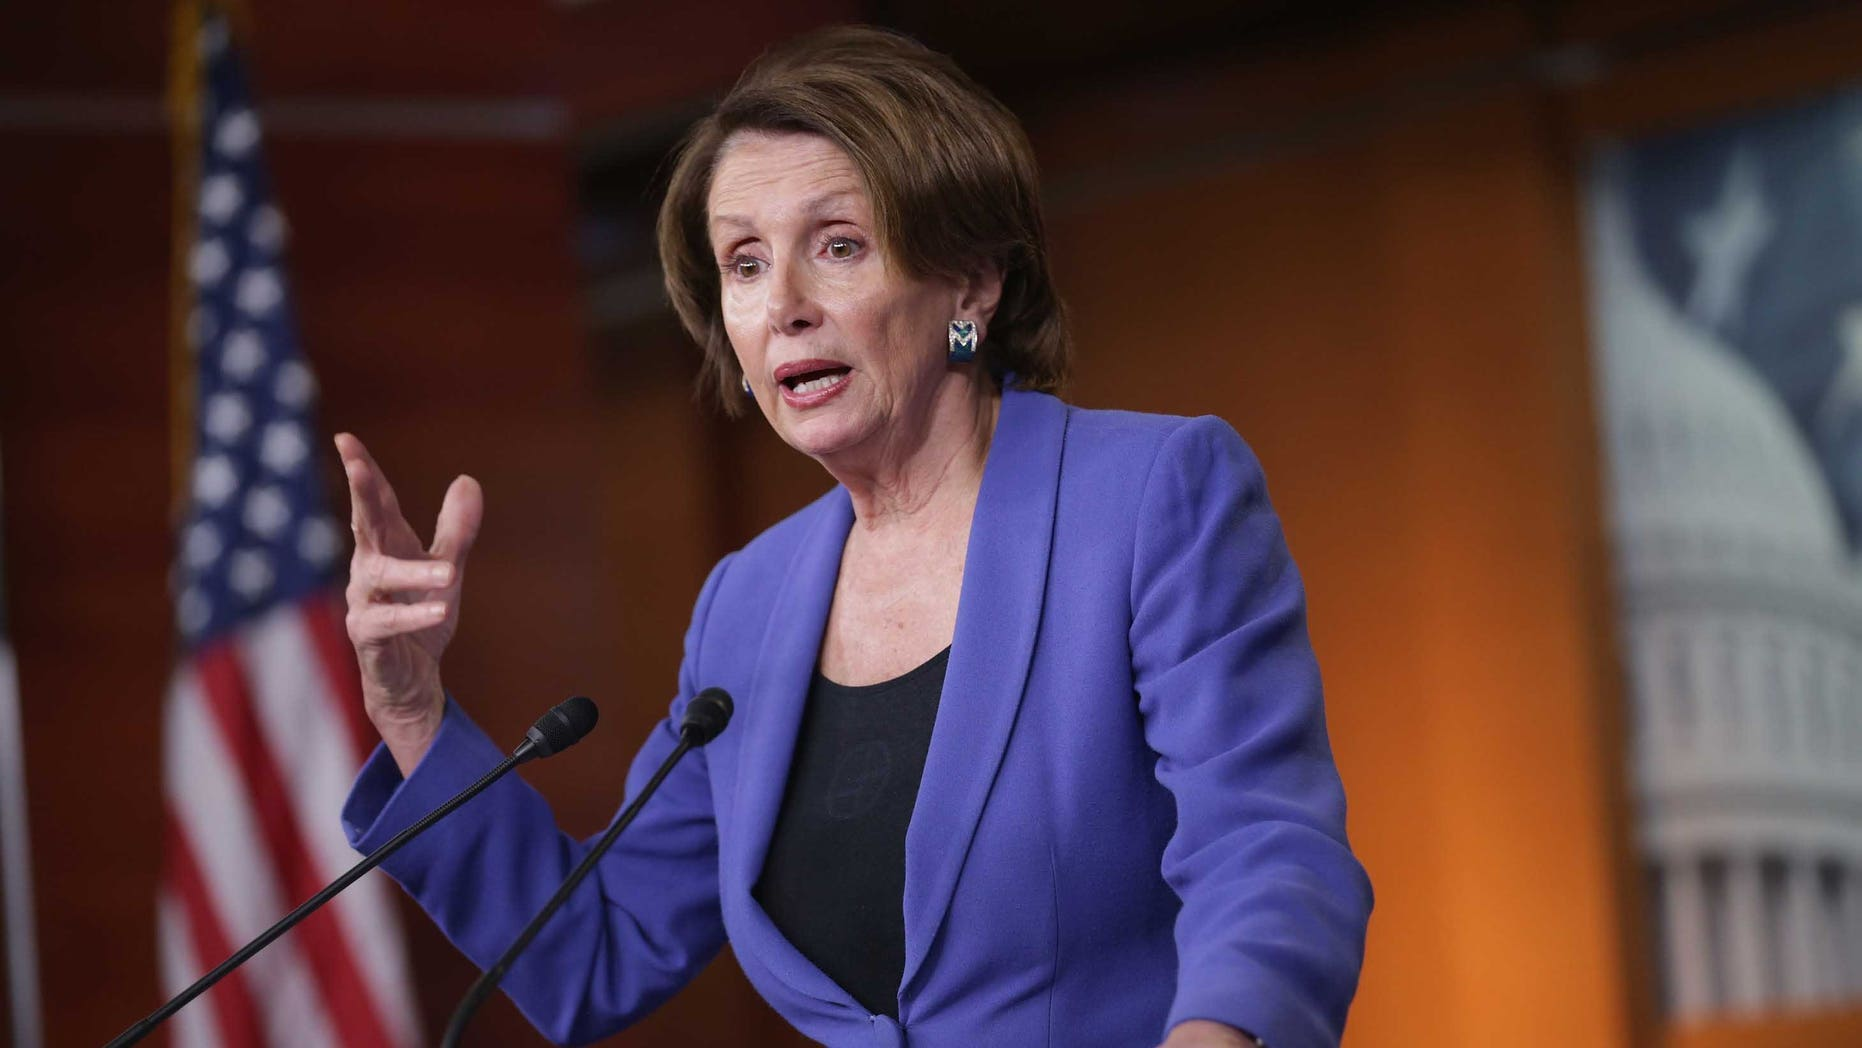 WASHINGTON, DC - FEBRUARY 12:  House Minority Leader Nancy Pelosi (D-CA) holds her weekly news conference in the Capitol Visitors Center at the U.S. Captiol February 12, 2015 in Washington, DC. Pelosi said President Barack Obama's request for the authorization of the use of military force against the group calling itself the Islamic State is a rare document because it actually calls for a limitation in the president's authority to command U.S. forces.  (Photo by Chip Somodevilla/Getty Images)